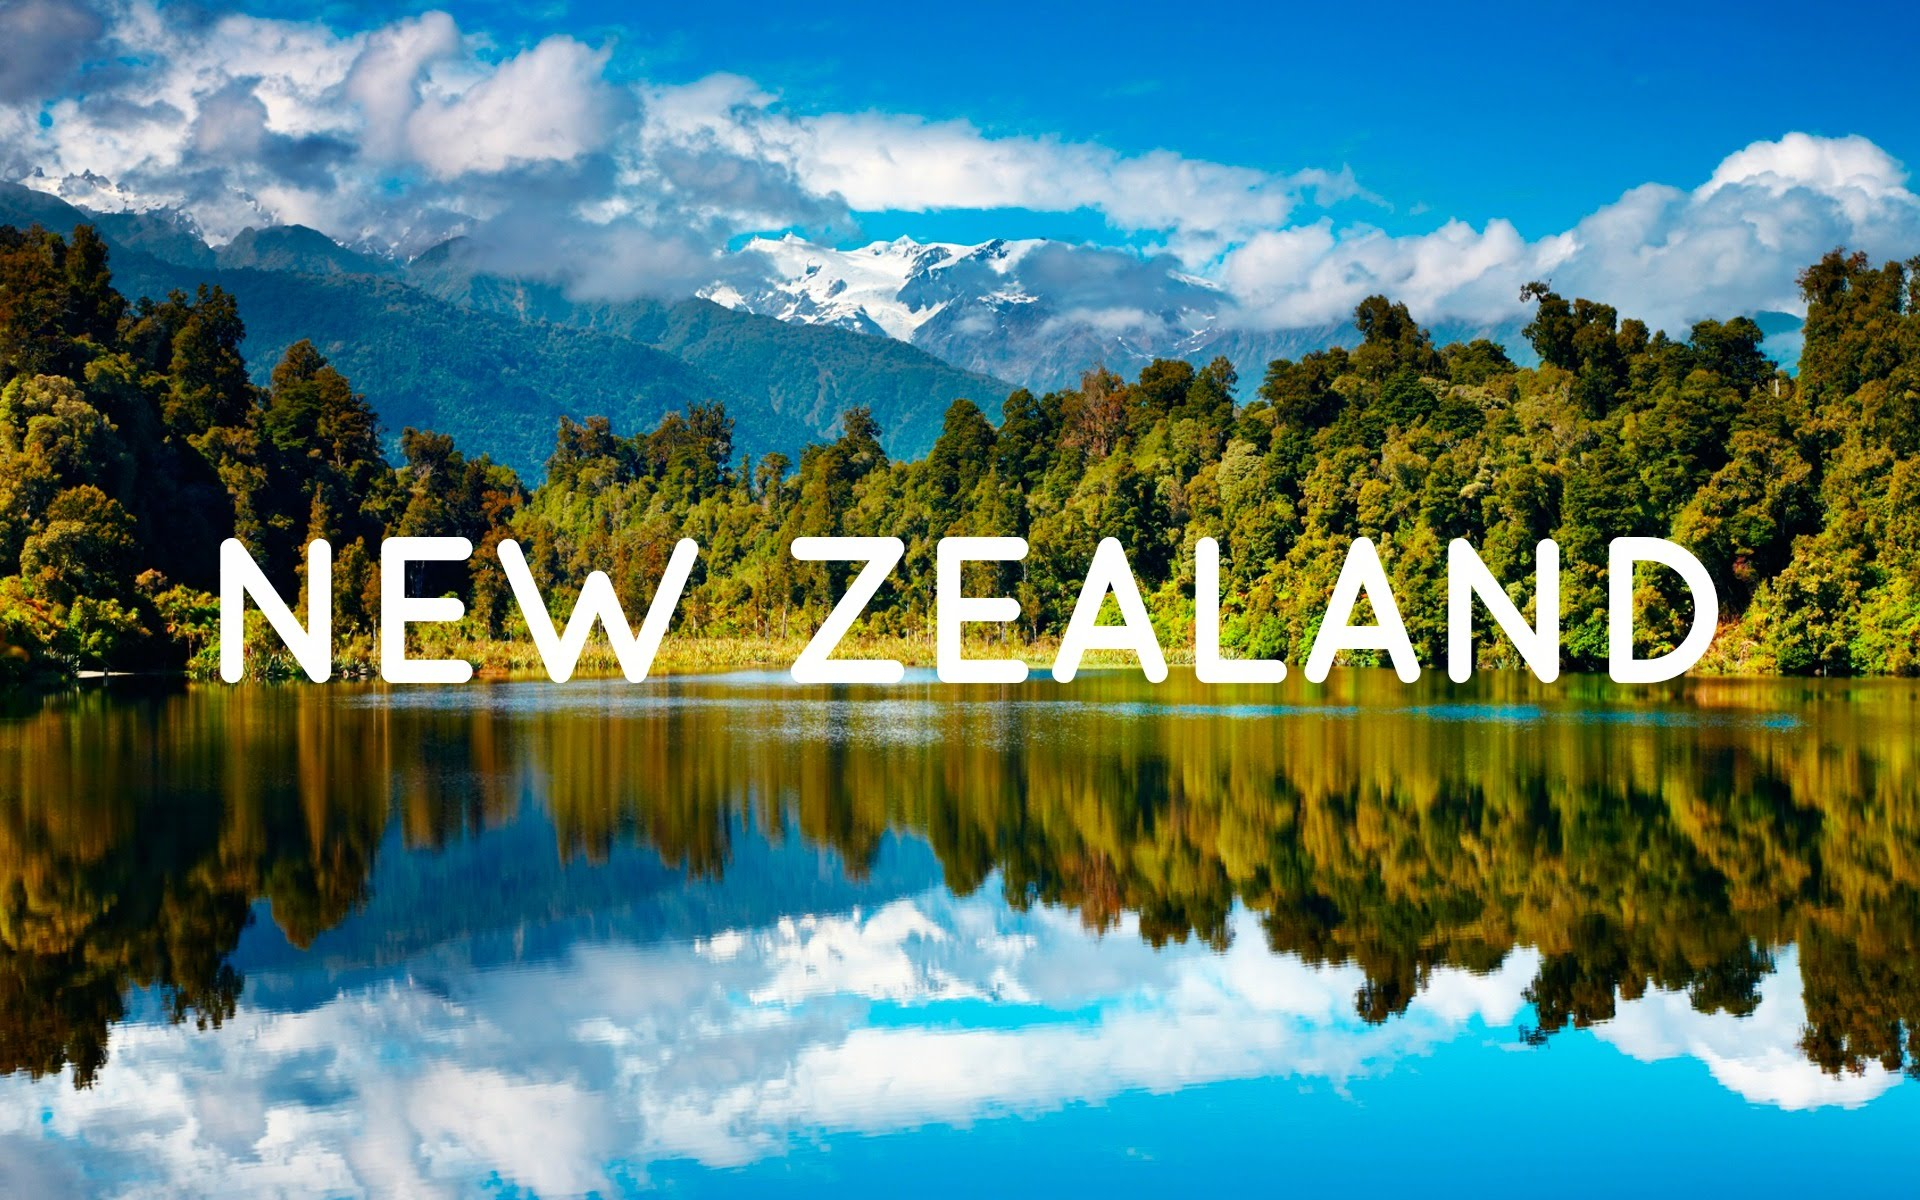 New Zealand trip (Between 22th Jan - 17th Feb) | Auckland ...